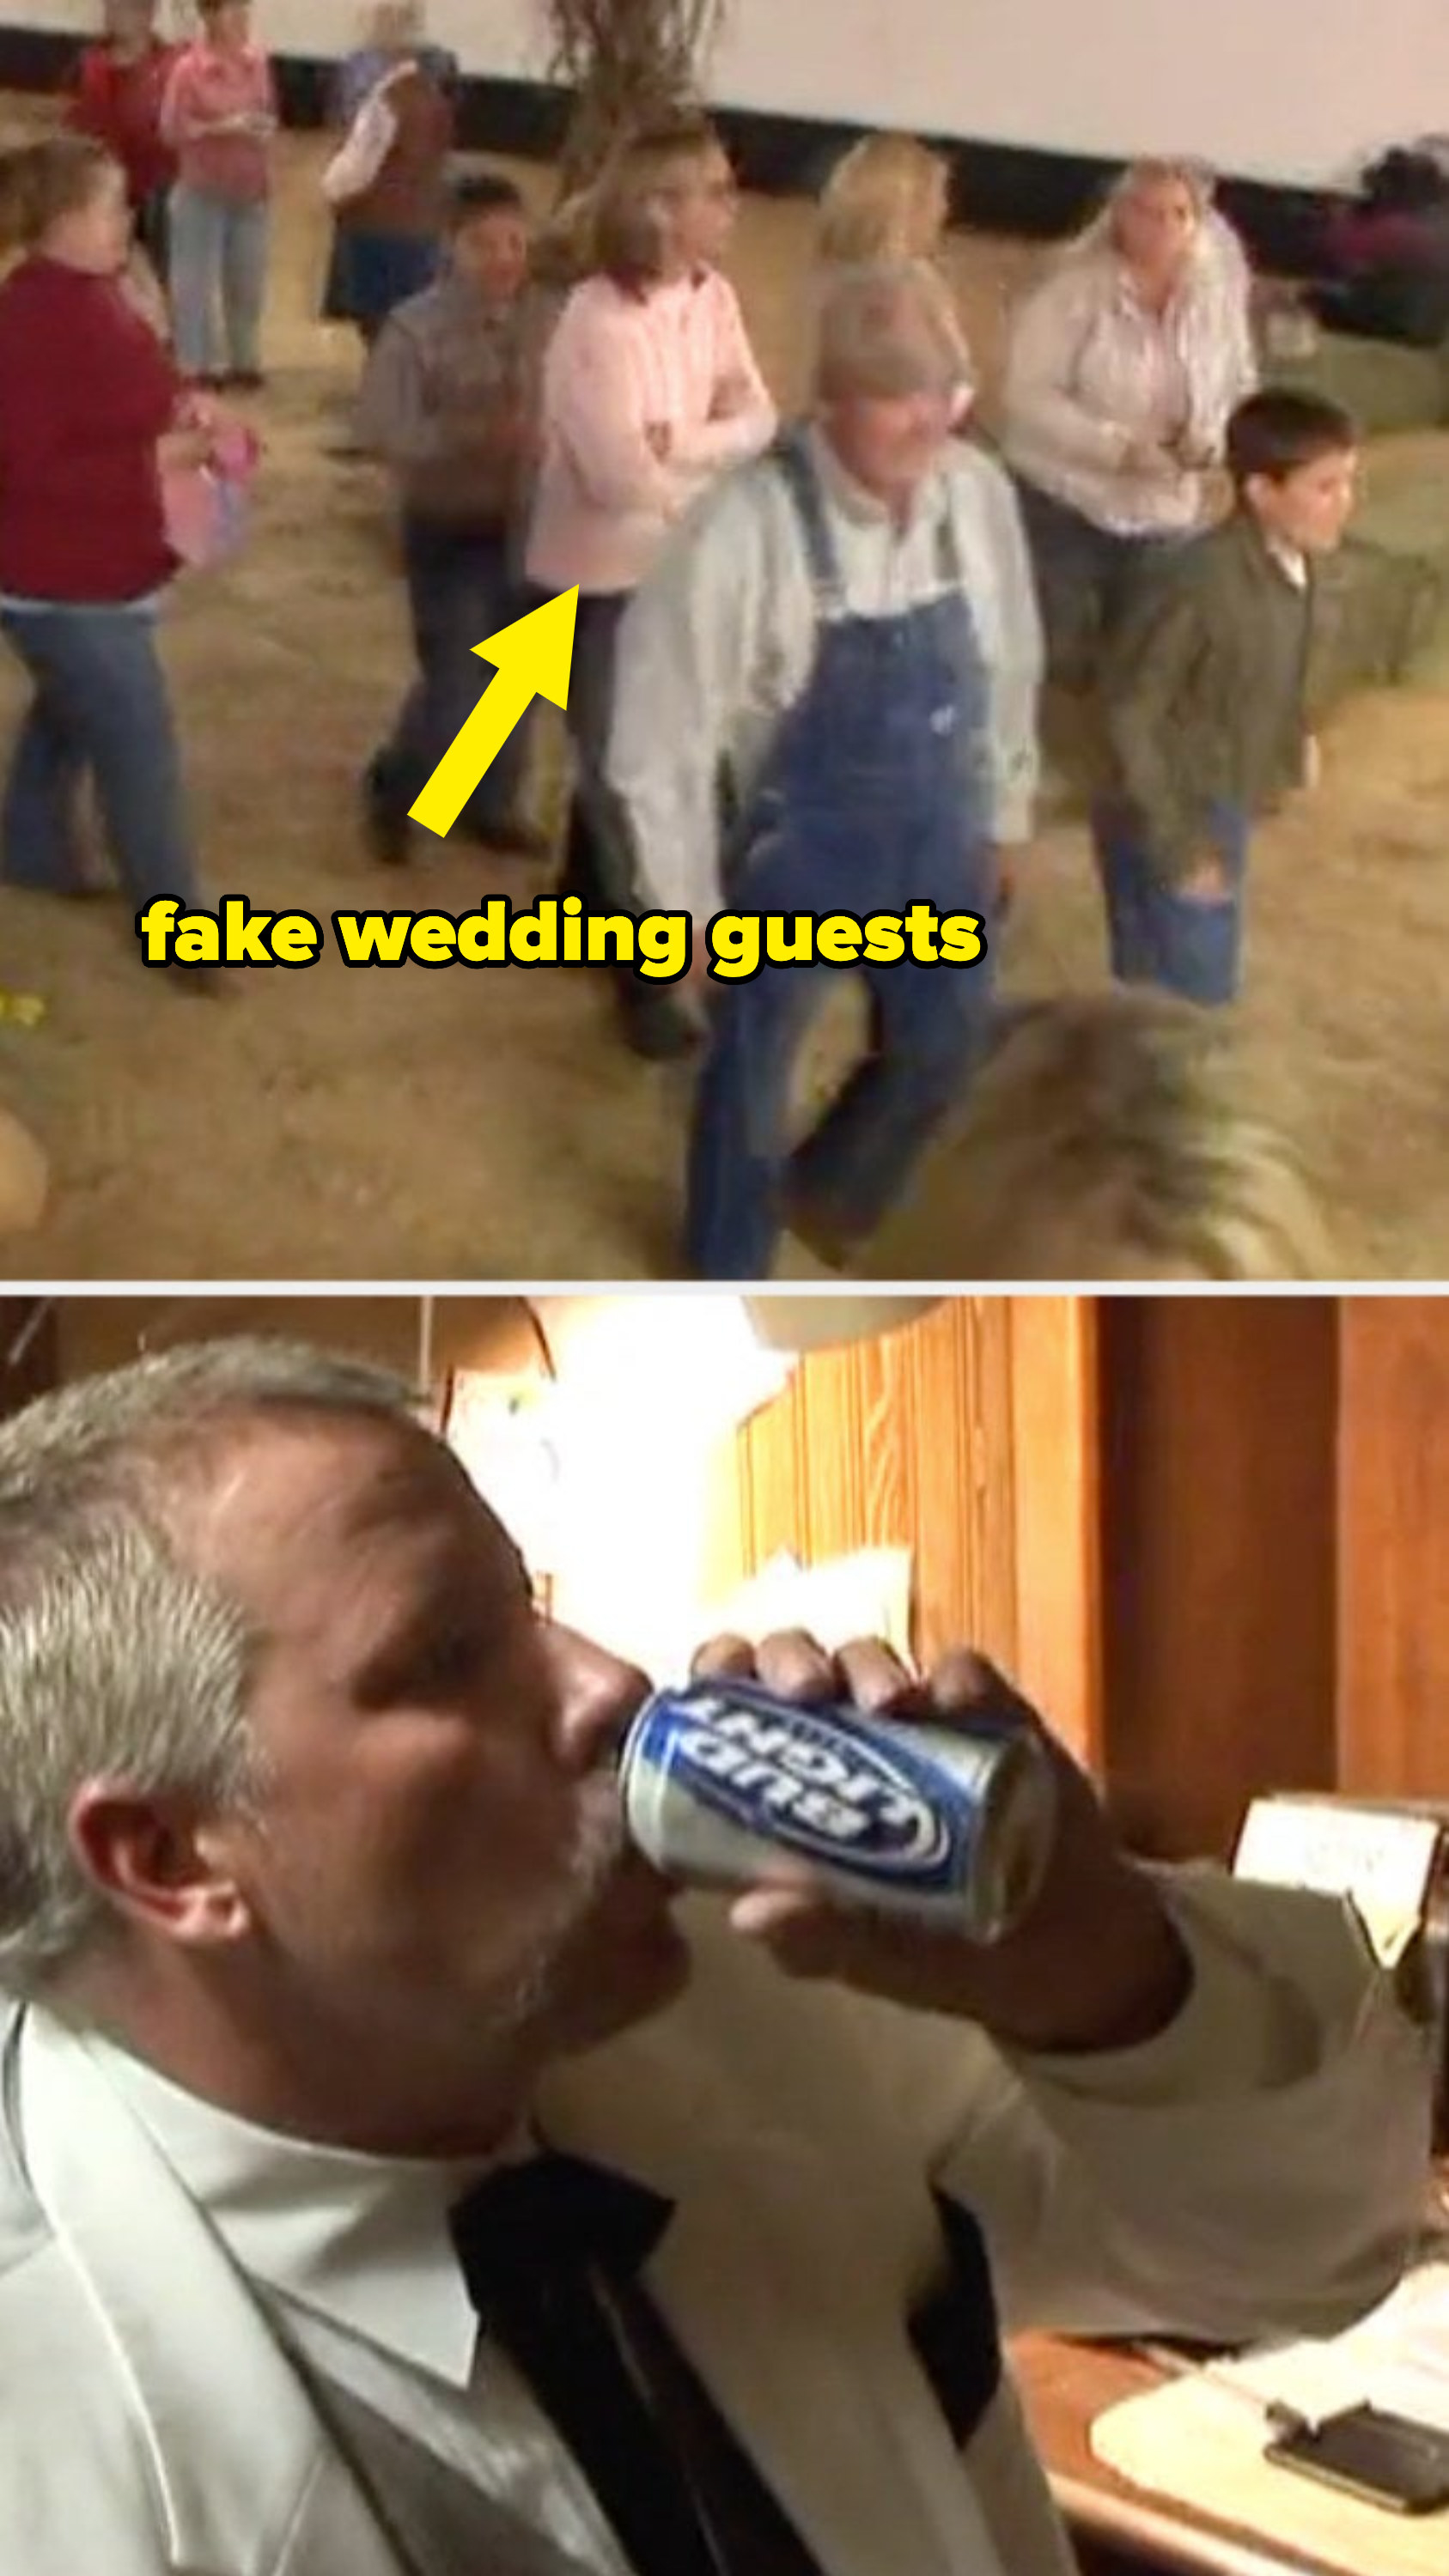 Fake wedding guests and the groom drinking a beer